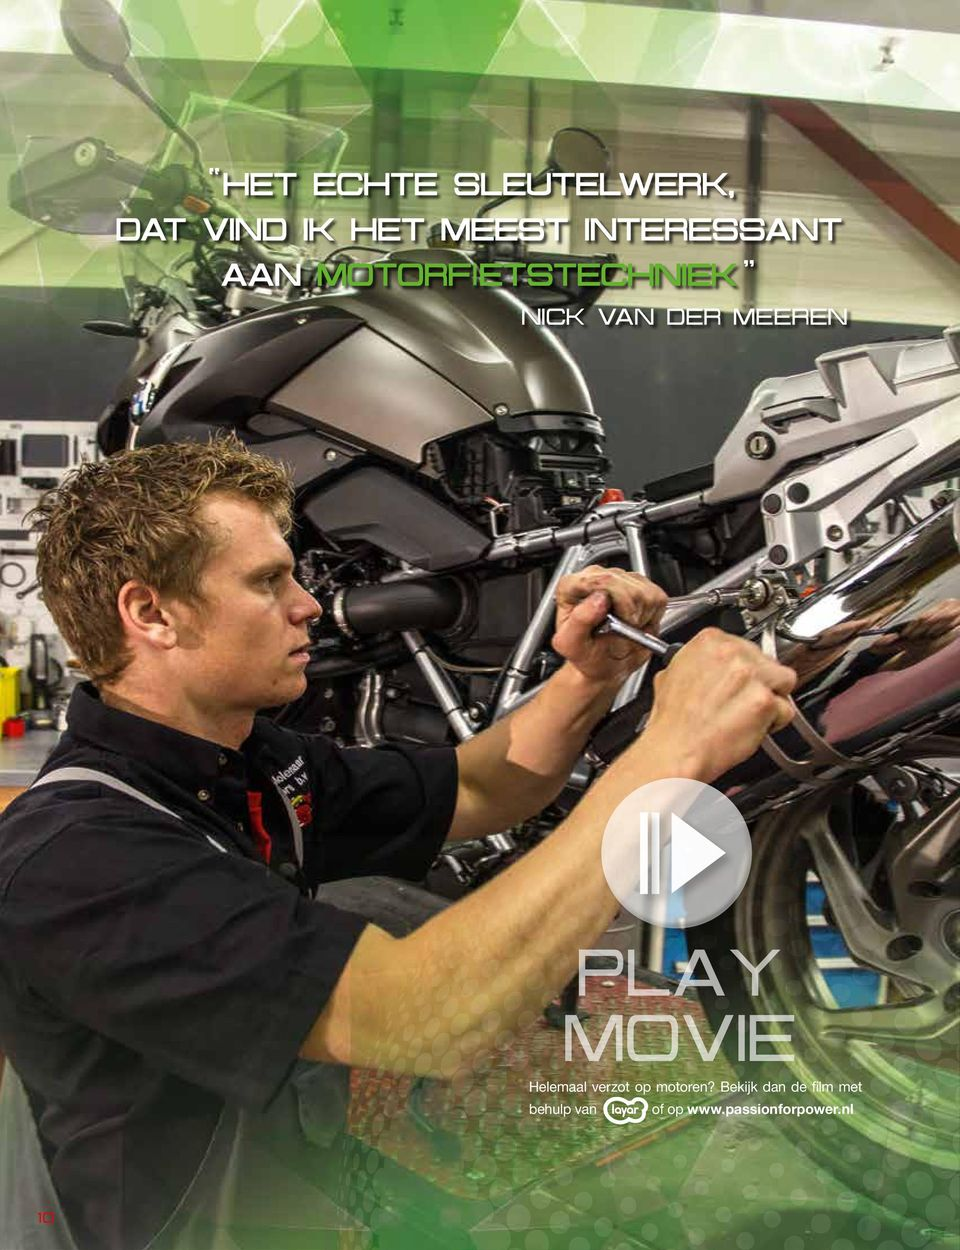 meeren PLAY MOVIE Helemaal verzot op motoren?